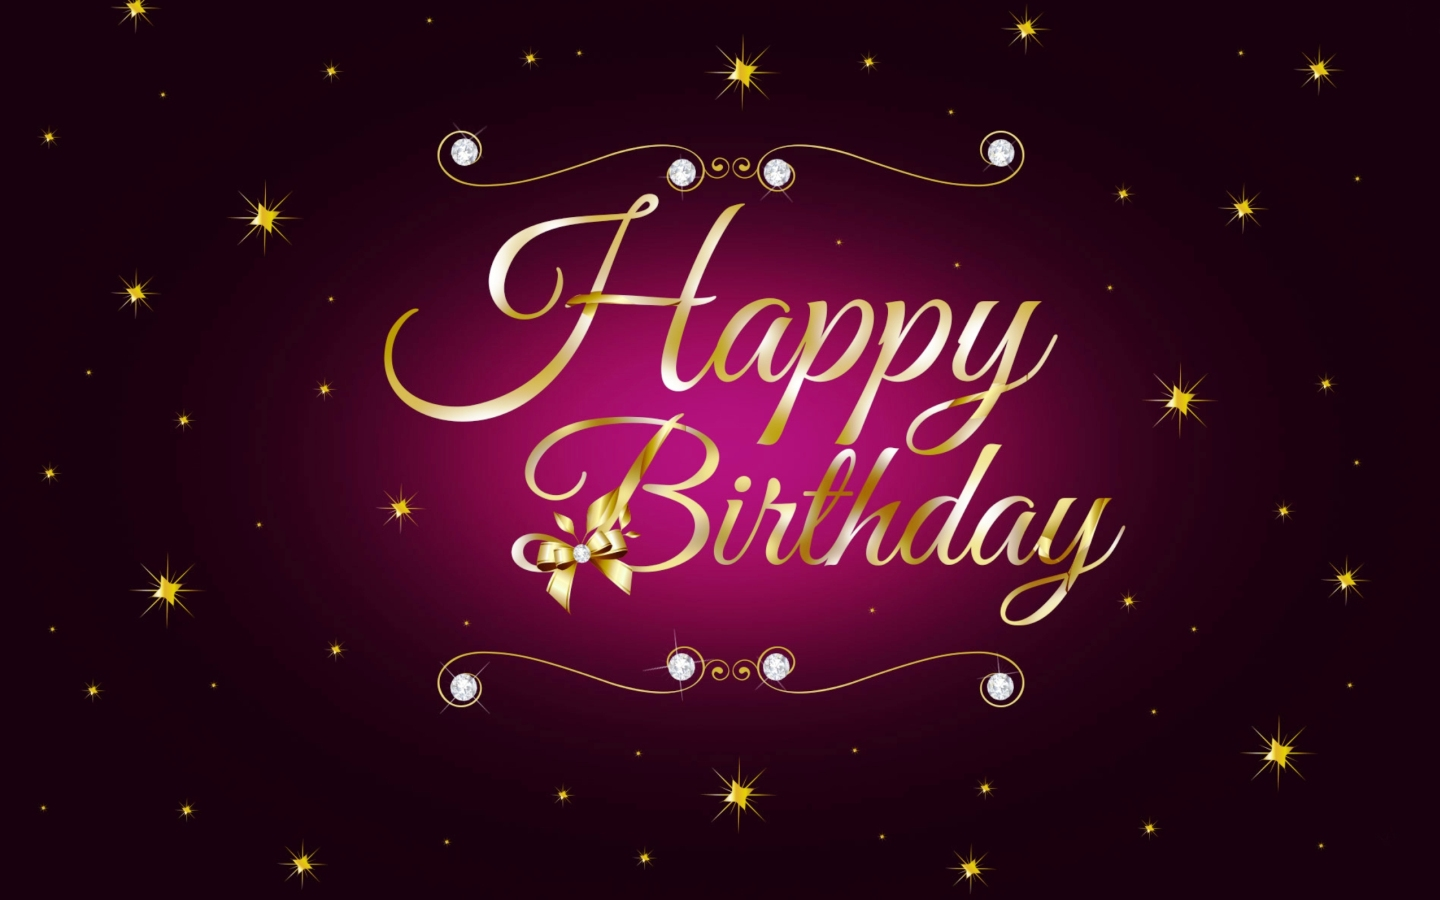 birthday greetings images free download ; happy-birthday-wishes-best-HD-wallpaper